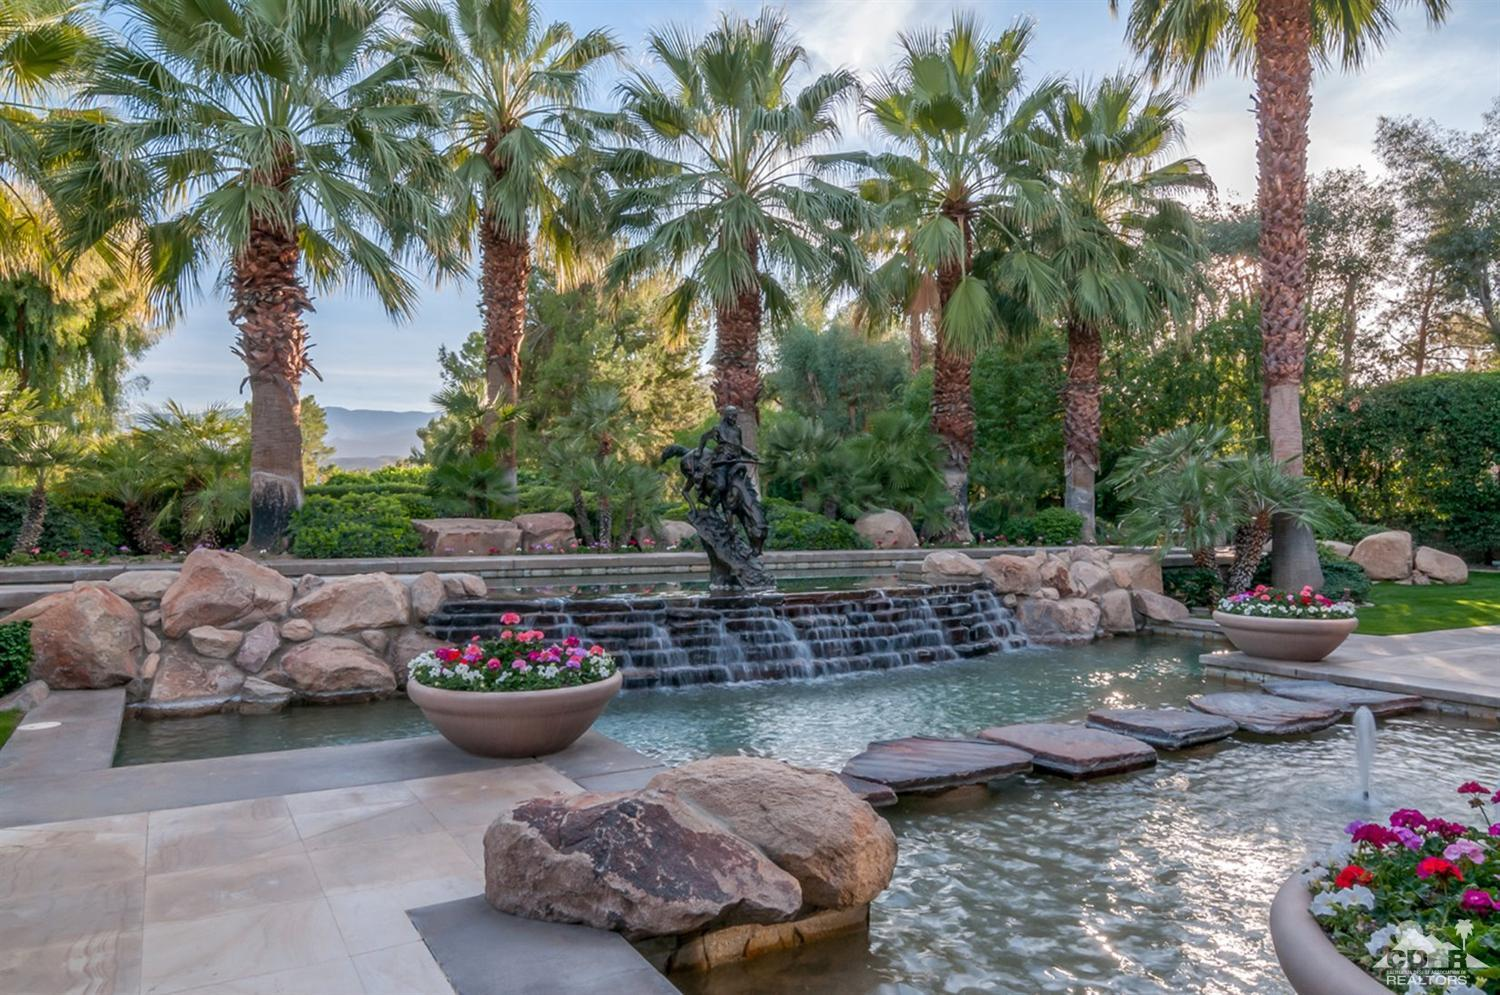 72420 Morningstar Rd, Rancho Mirage, CA